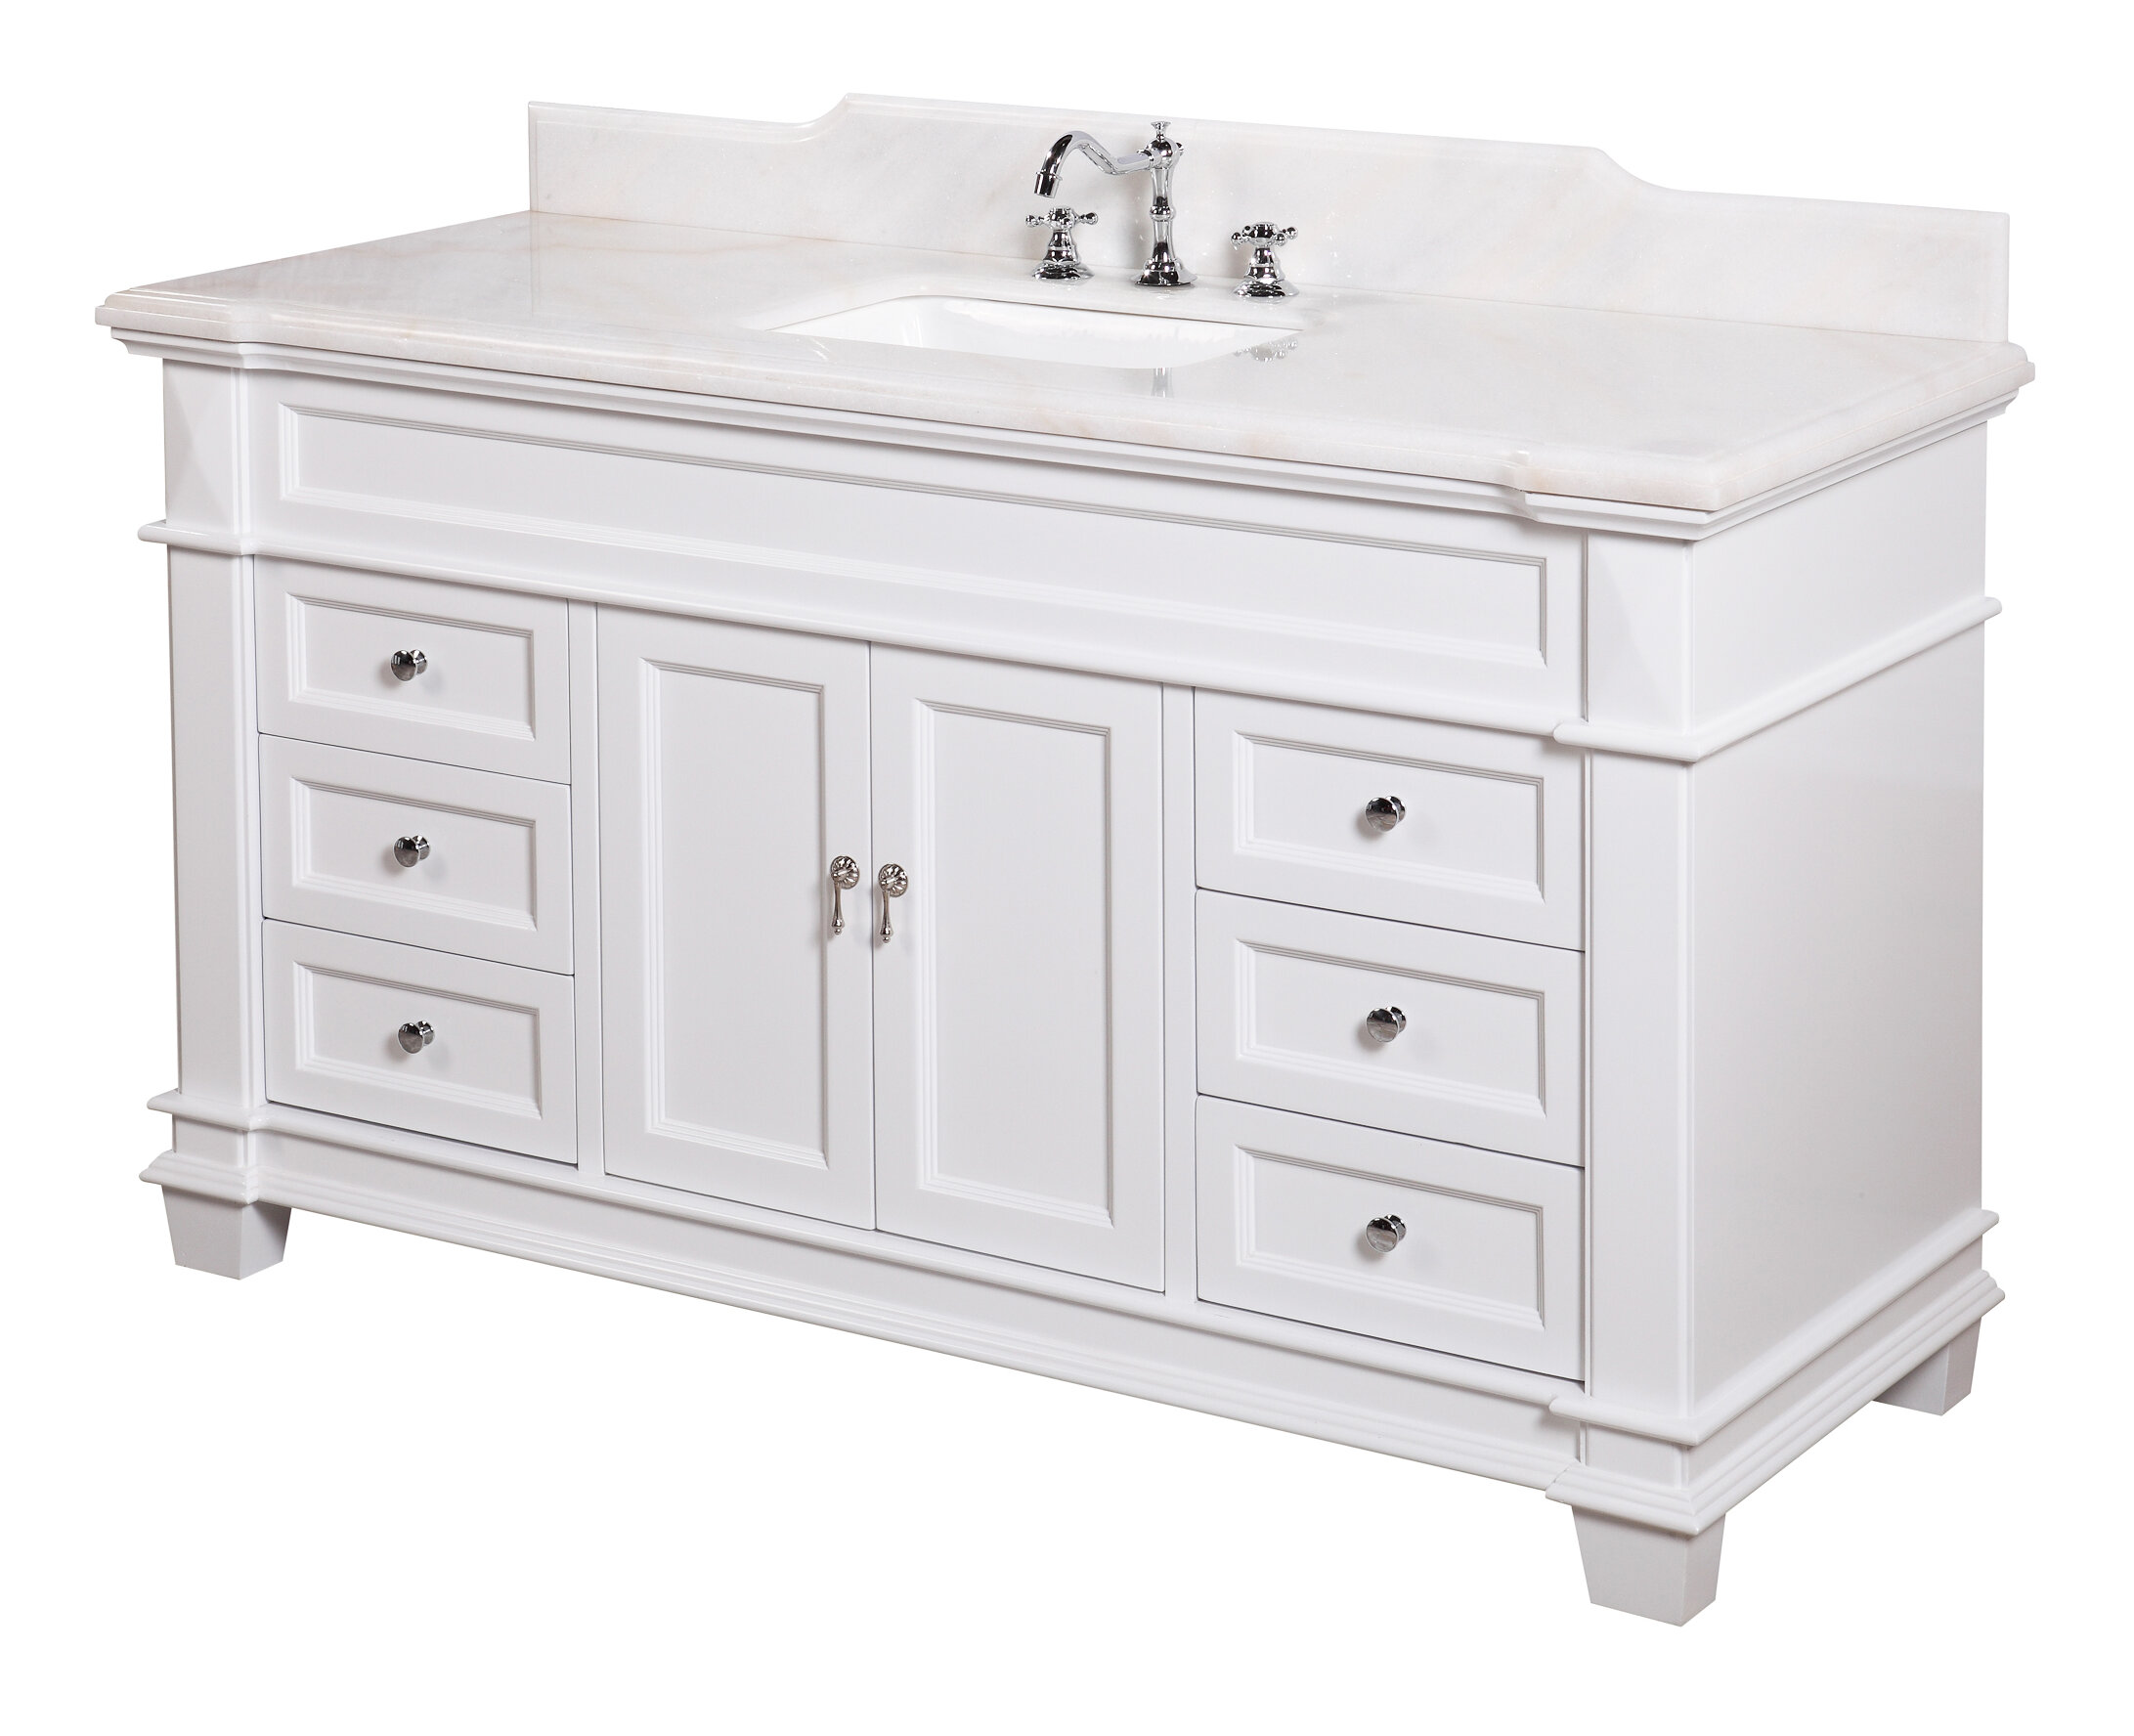 60 Quartz Vanity Kitchen Bath Collection Quartz Art